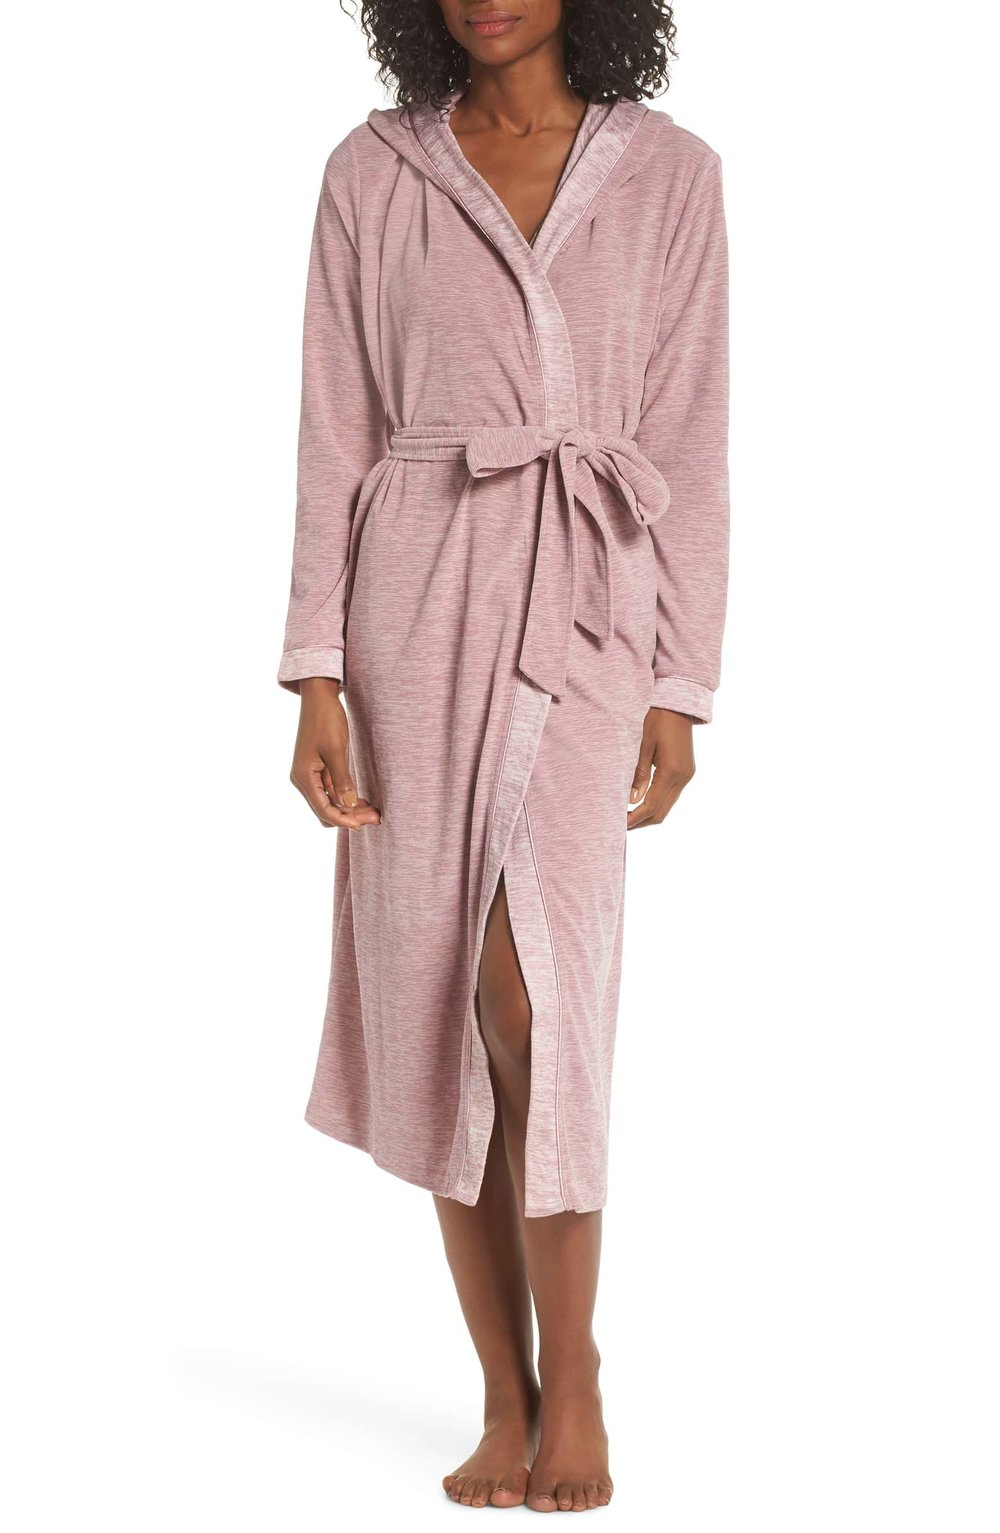 Spacedye Hooded Robe Nordstrom.jpg